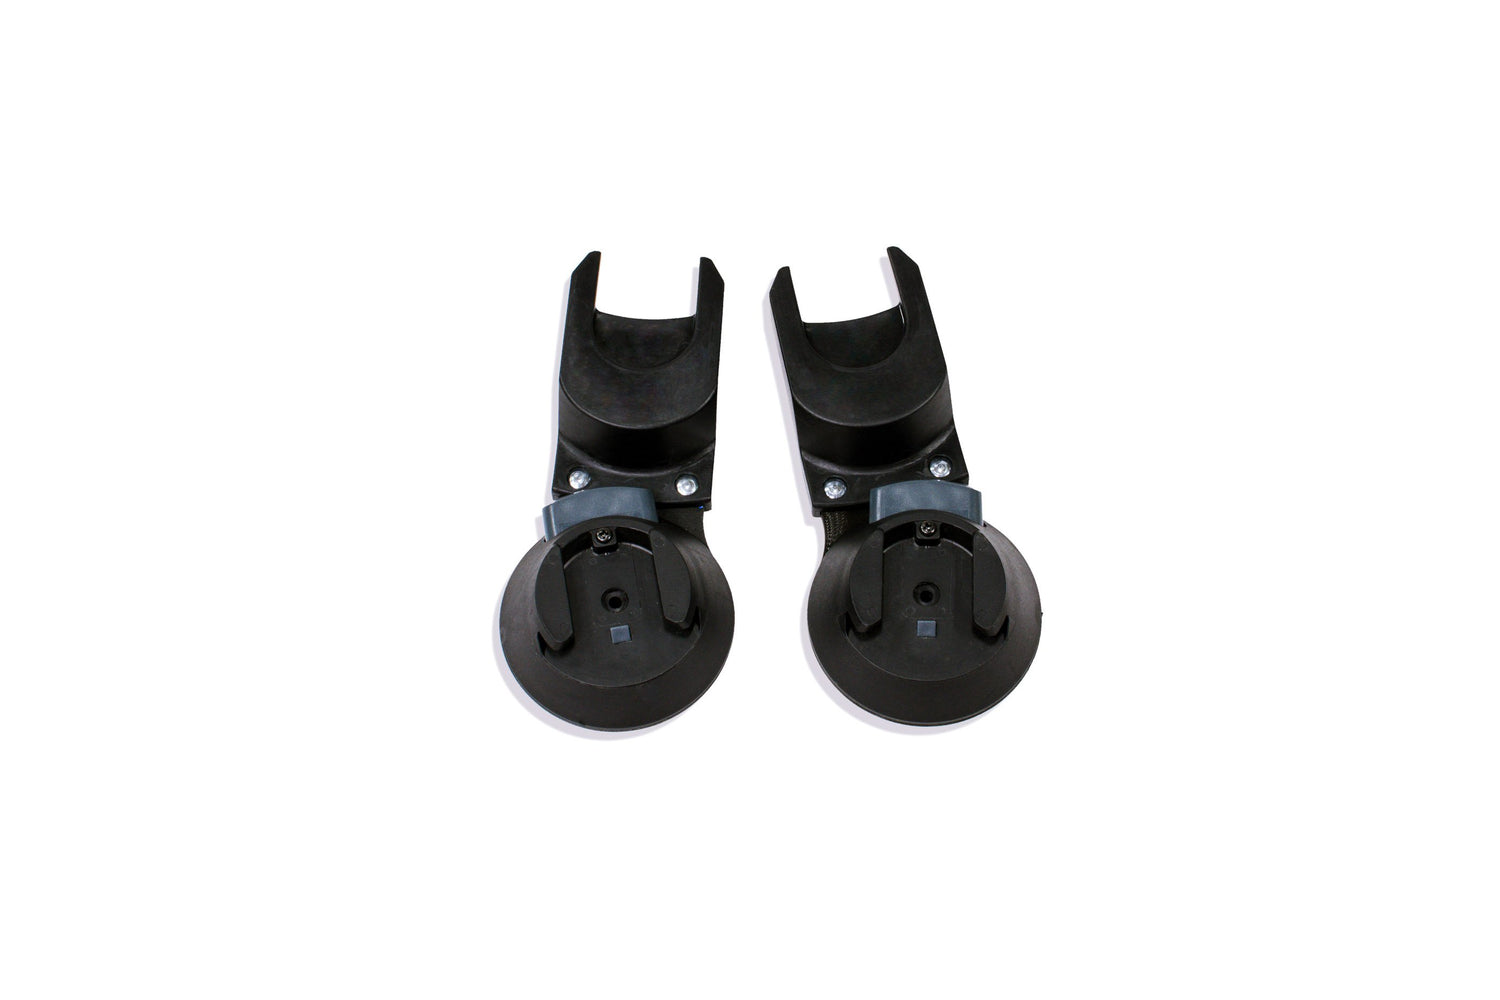 Indie / Speed Car Seat Adapter - Clek/ Maxi Cosi/ Cybex/ Nuna